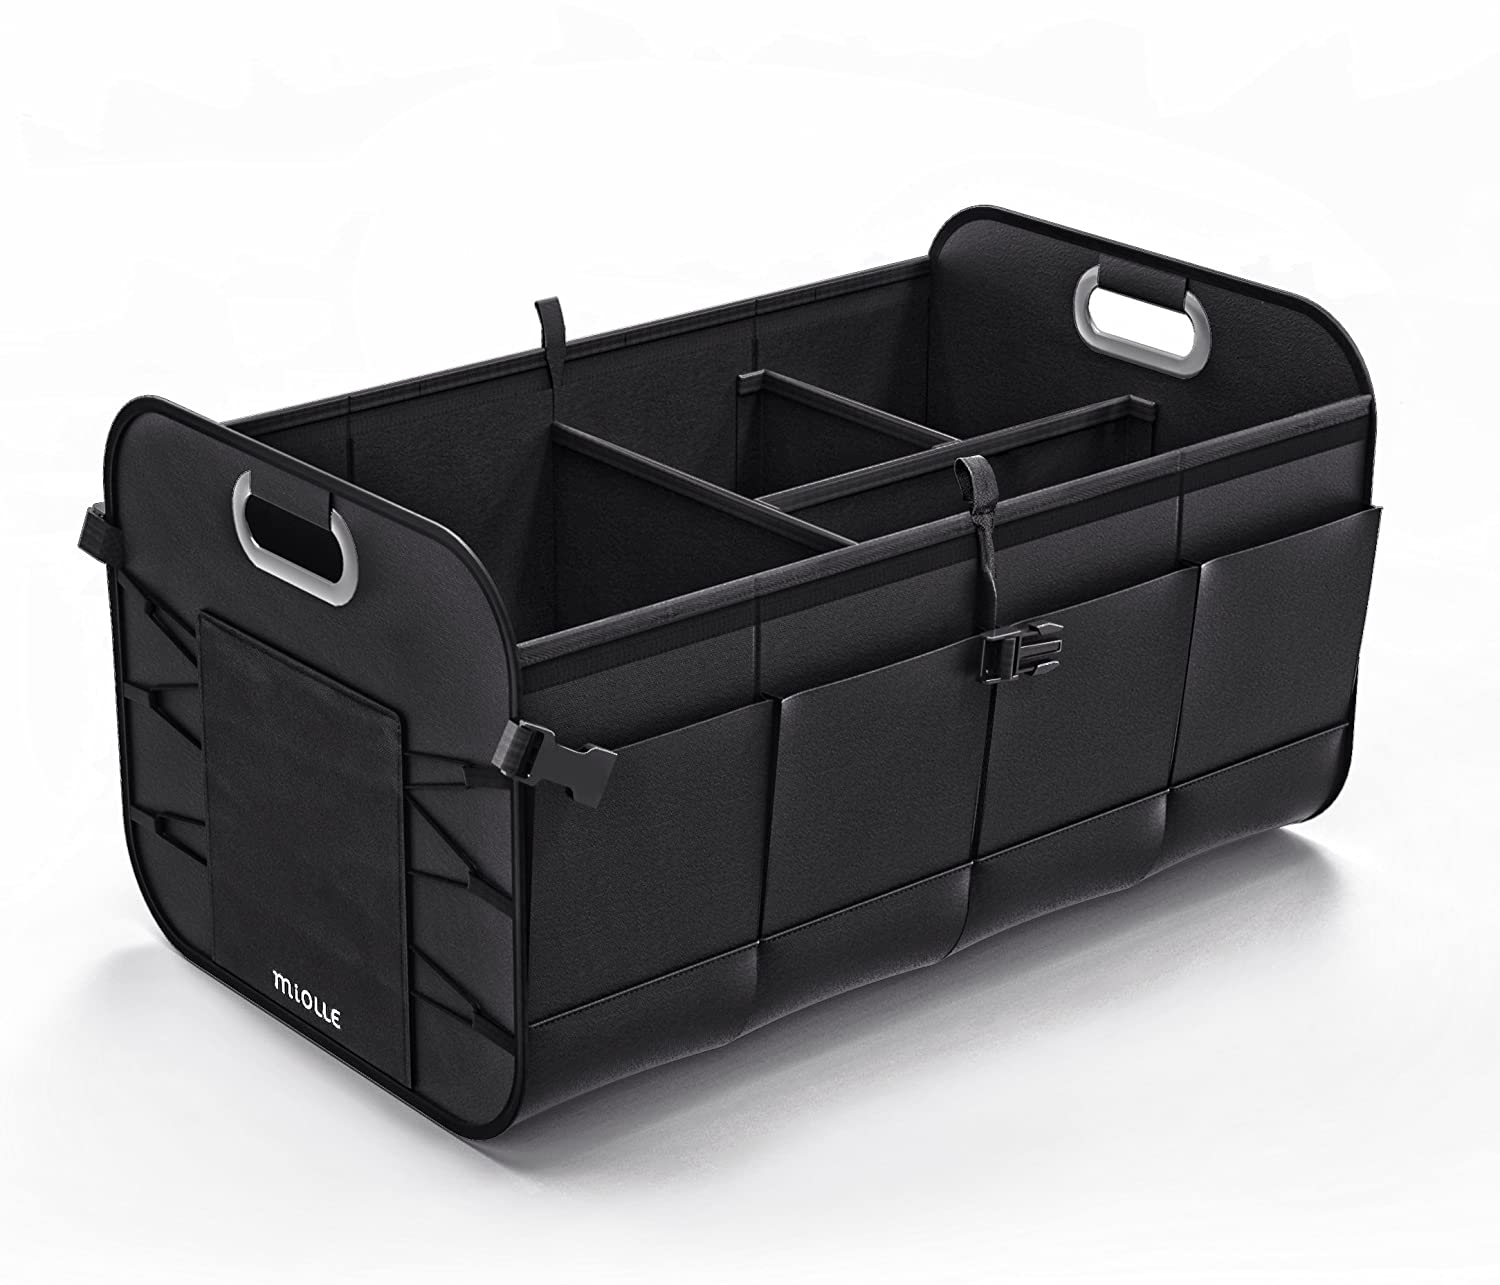 Miolle Trunk Organizer for car - Trunk Storage Organizer - Car SUV Van Cargo Storage Organizer - Auto Truck Organizers - Collapsible Organizer for Small and Large Cars